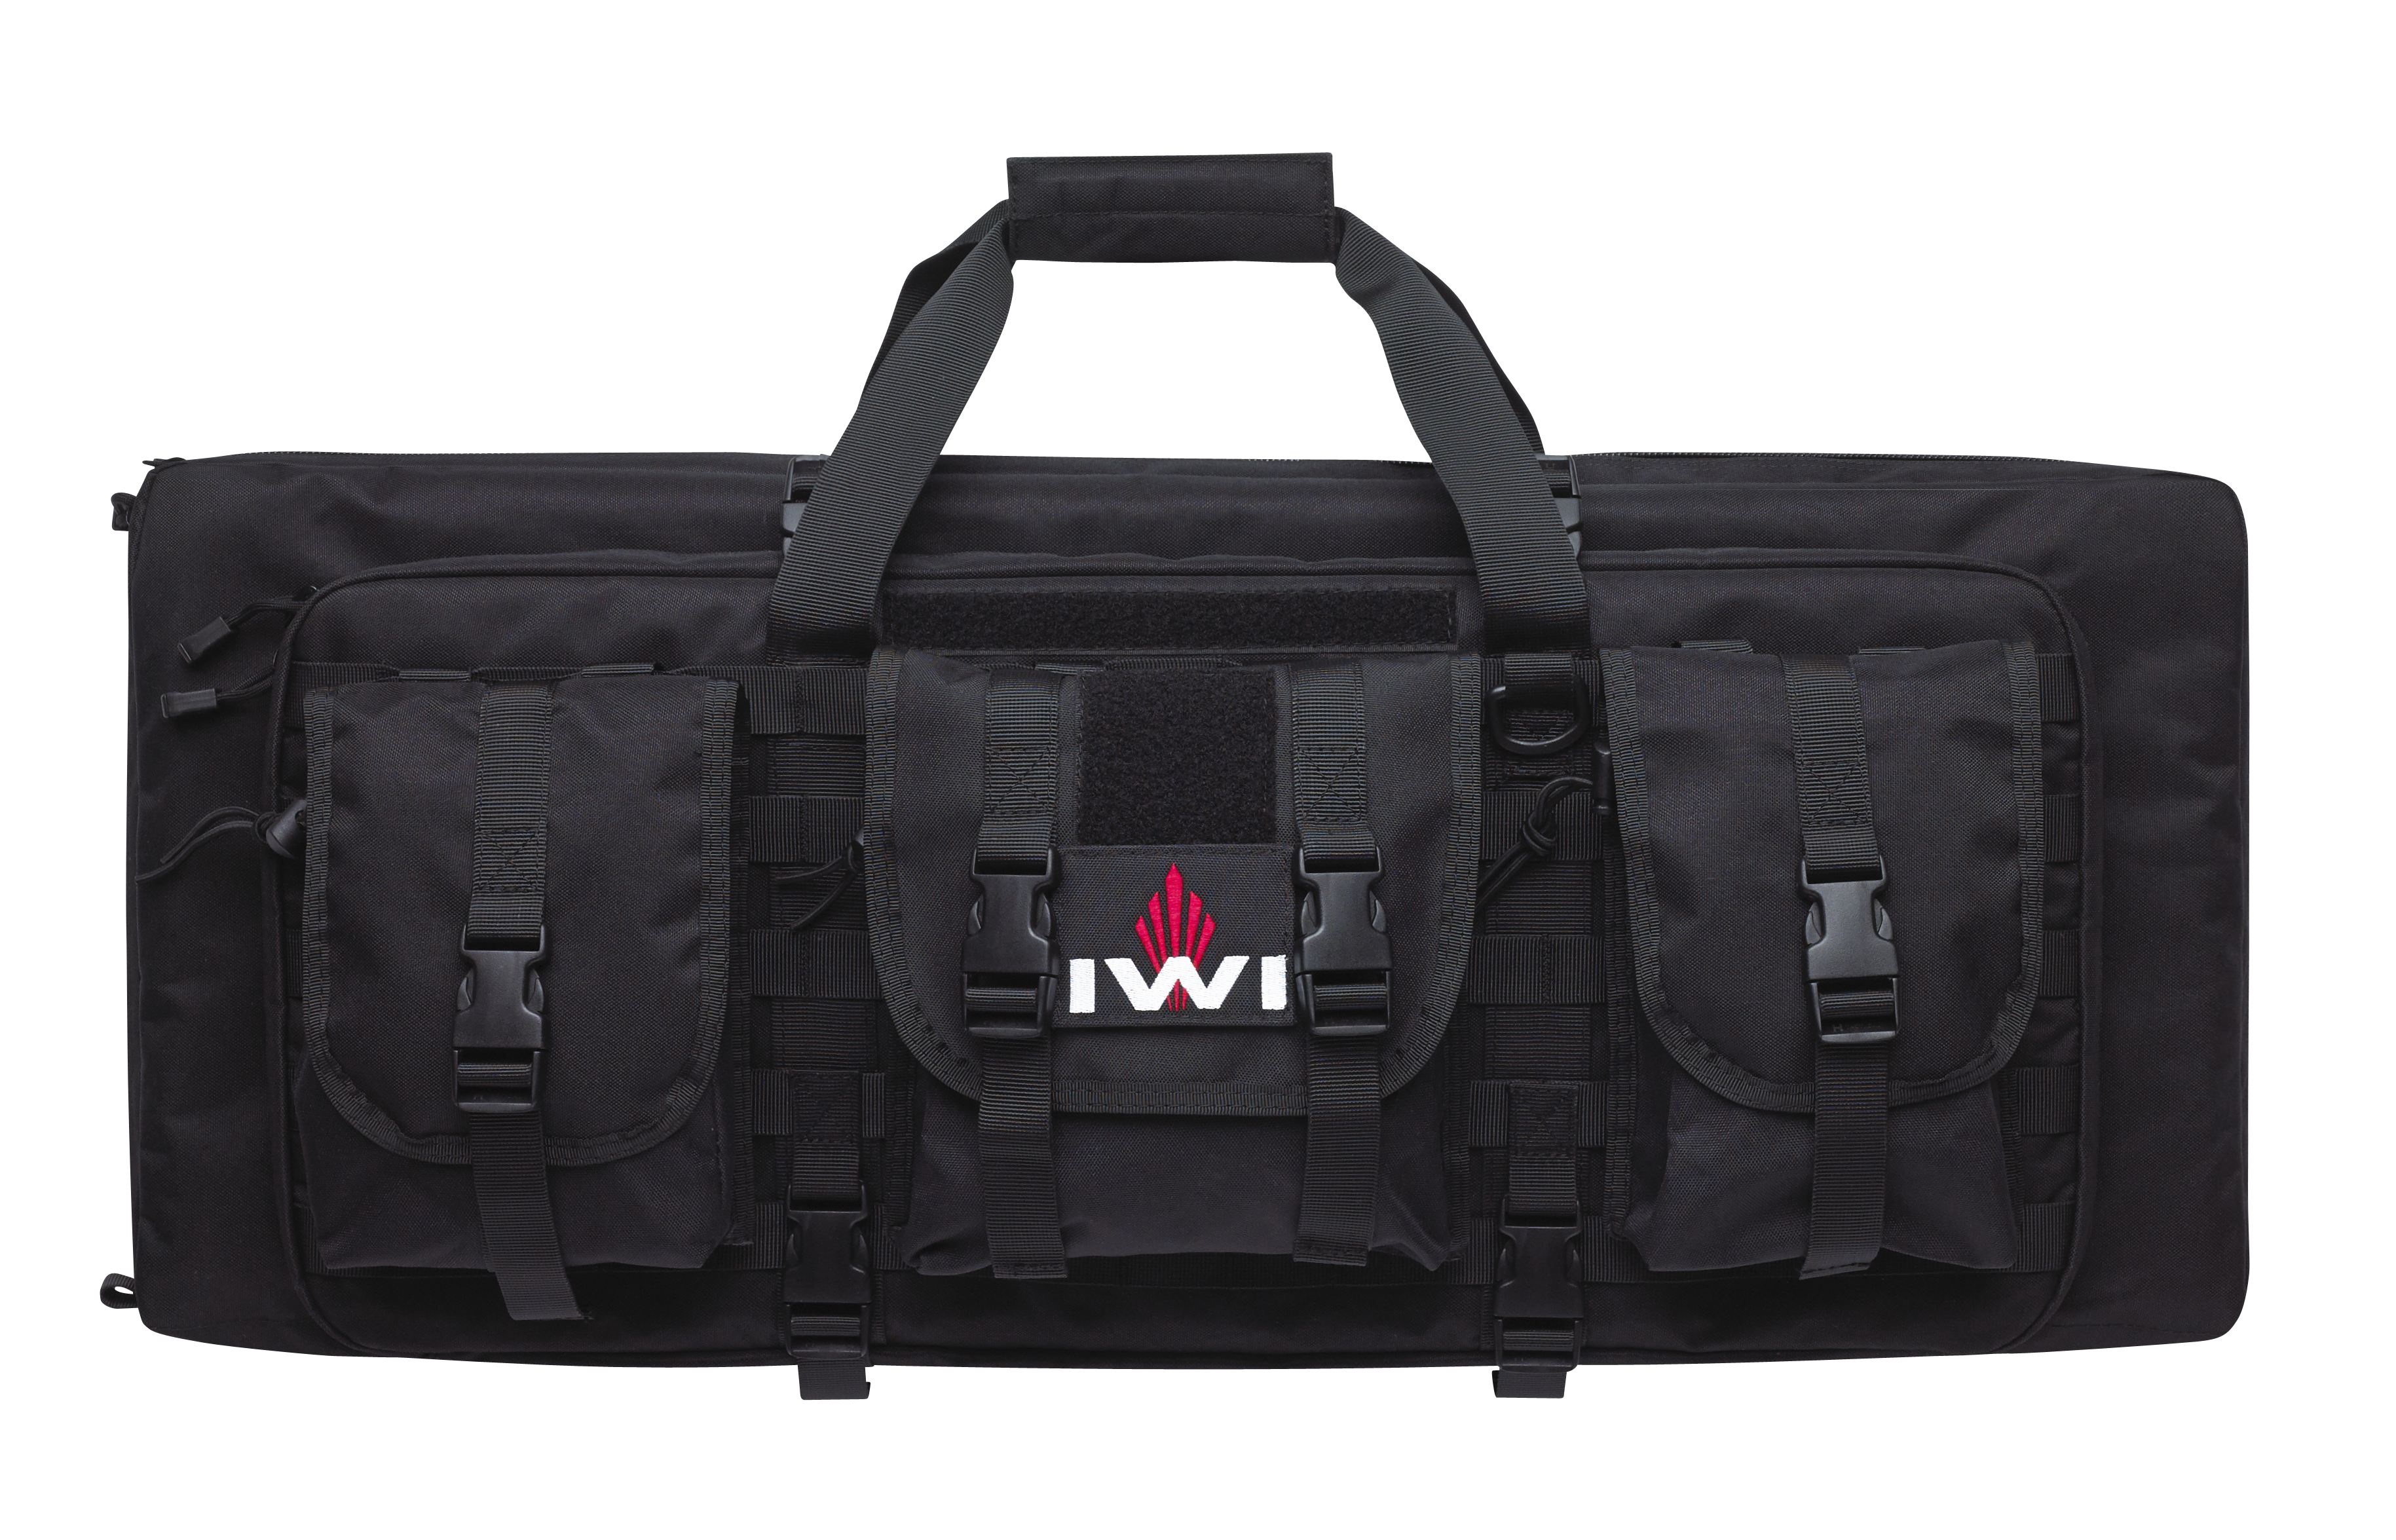 Two Large Heavily Cushioned And Secured Compartments Hold Both Your Tavor Handguns In One Case Molle Compatible Webbing On The Exterior Of